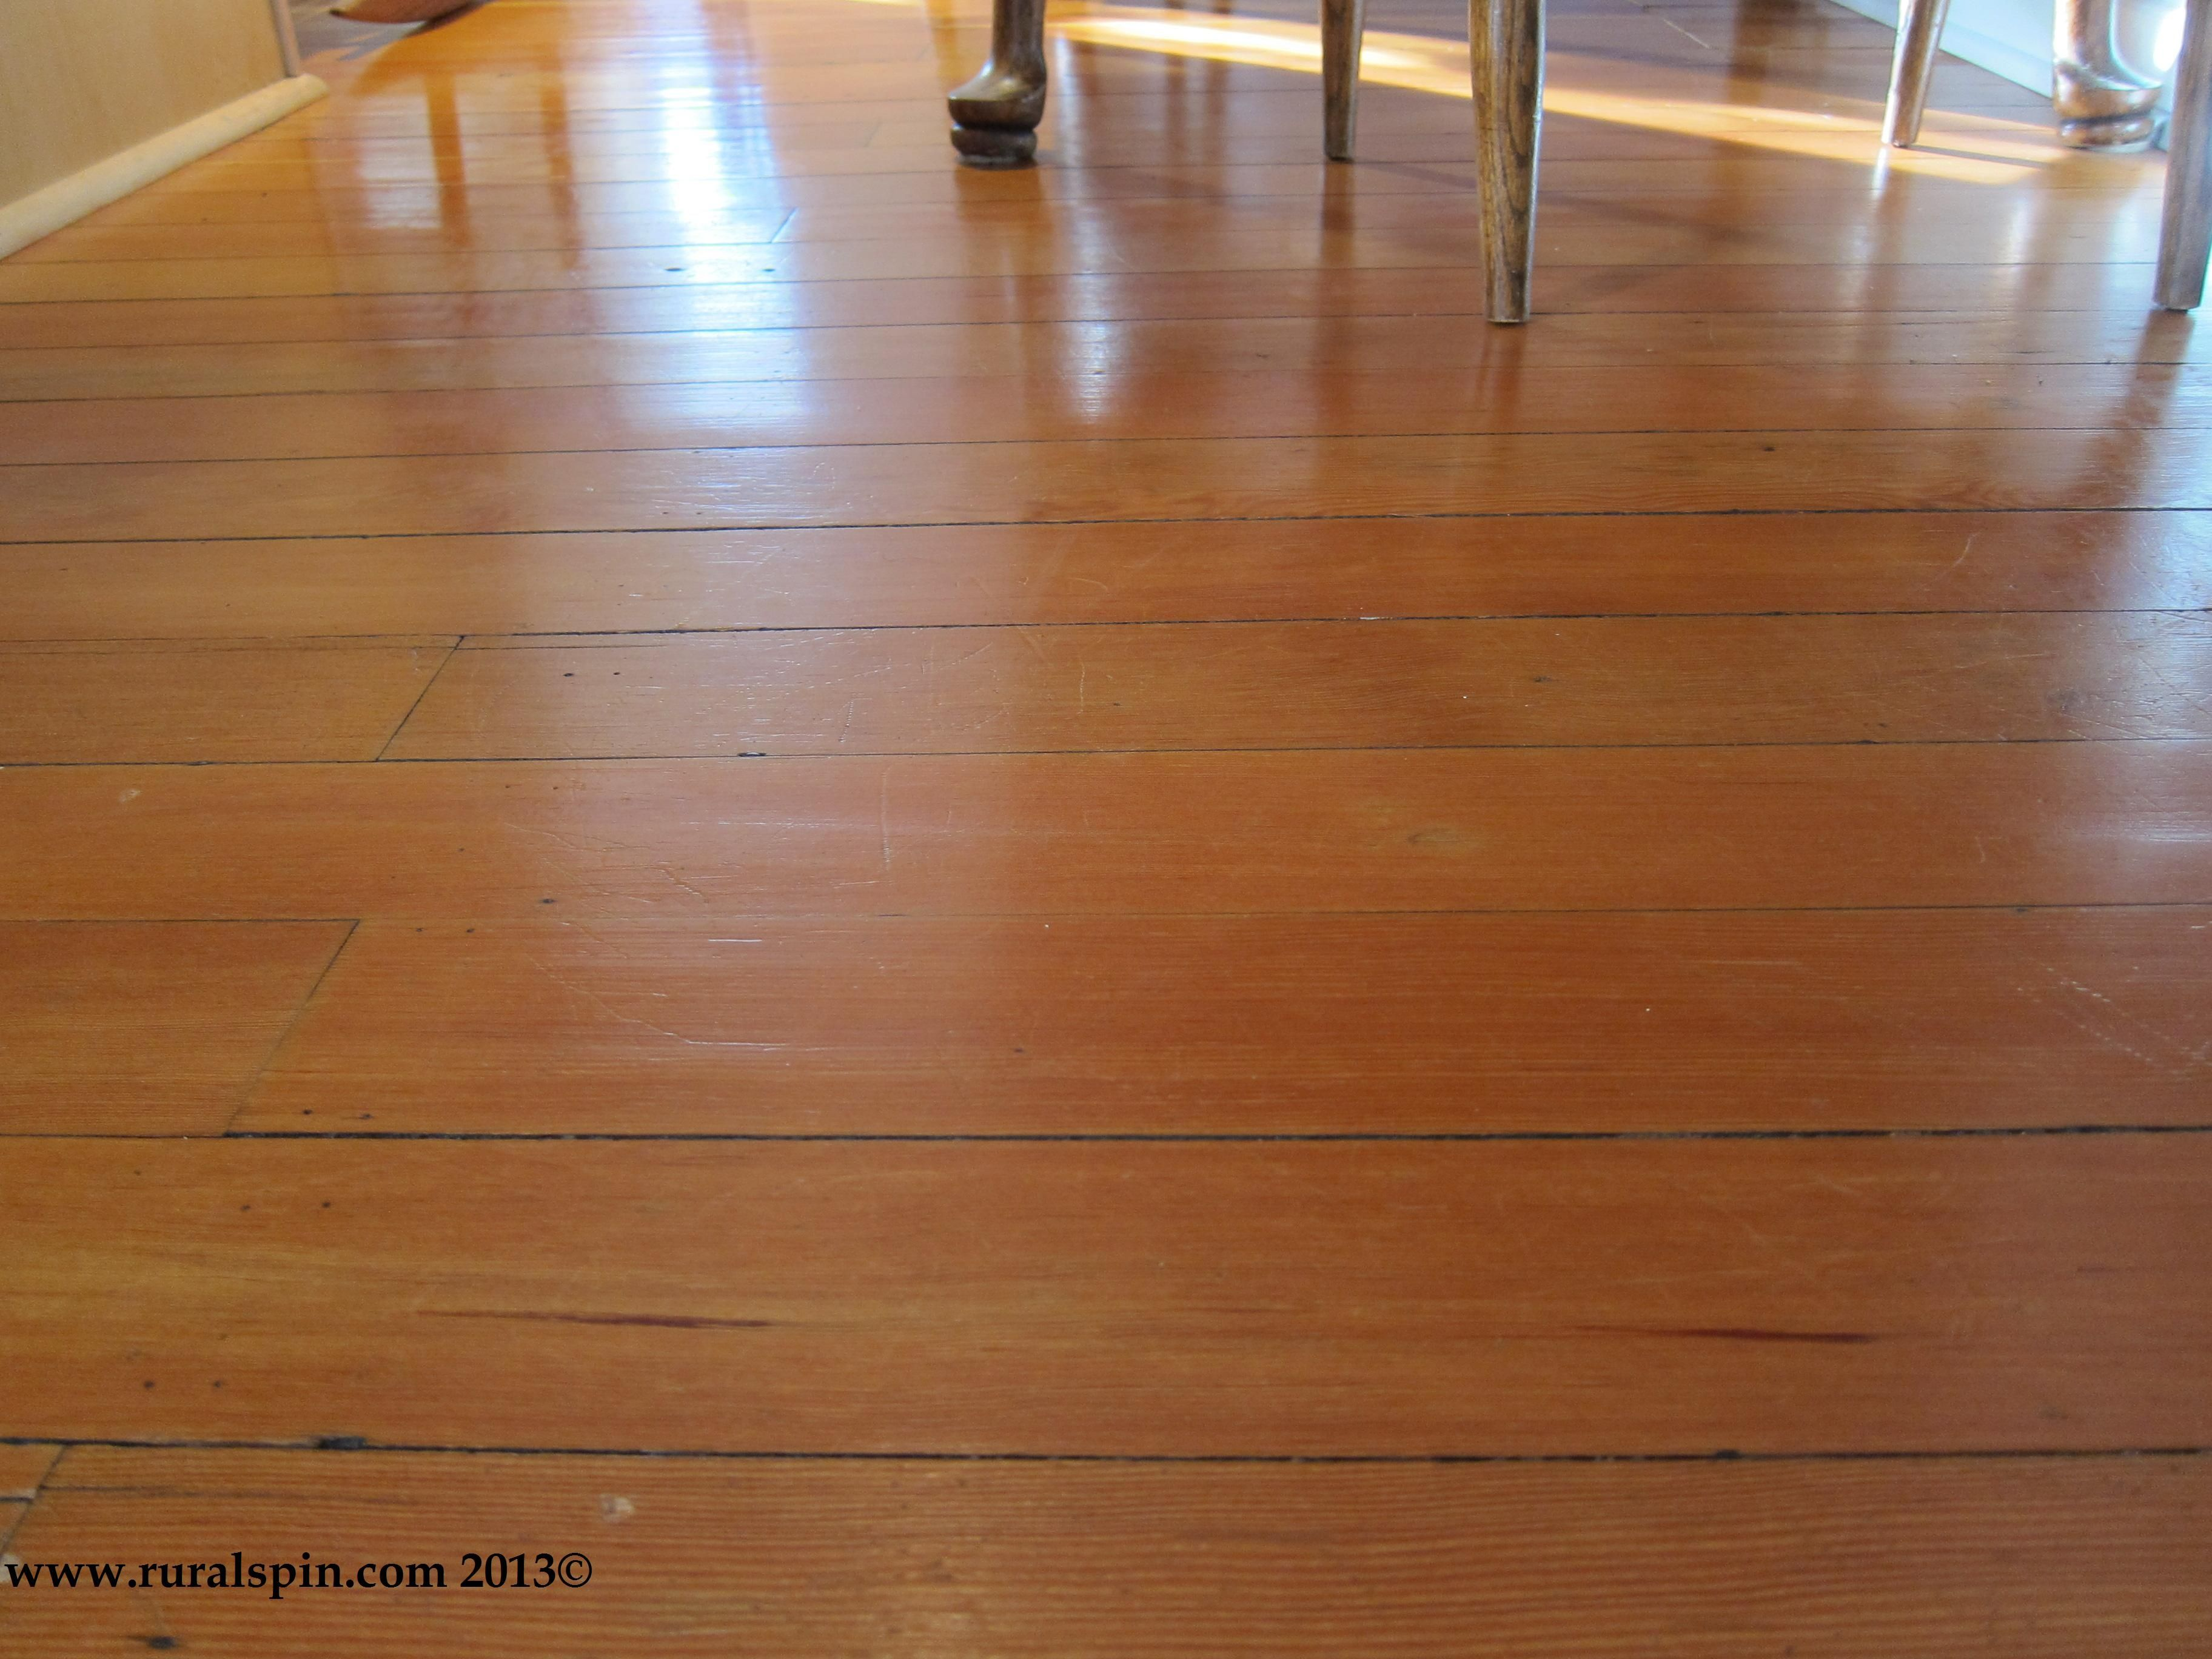 lamanatorplus clean images floors floor to free cleaning wooden hard wood using from how designs f best of ideas step has hardwood